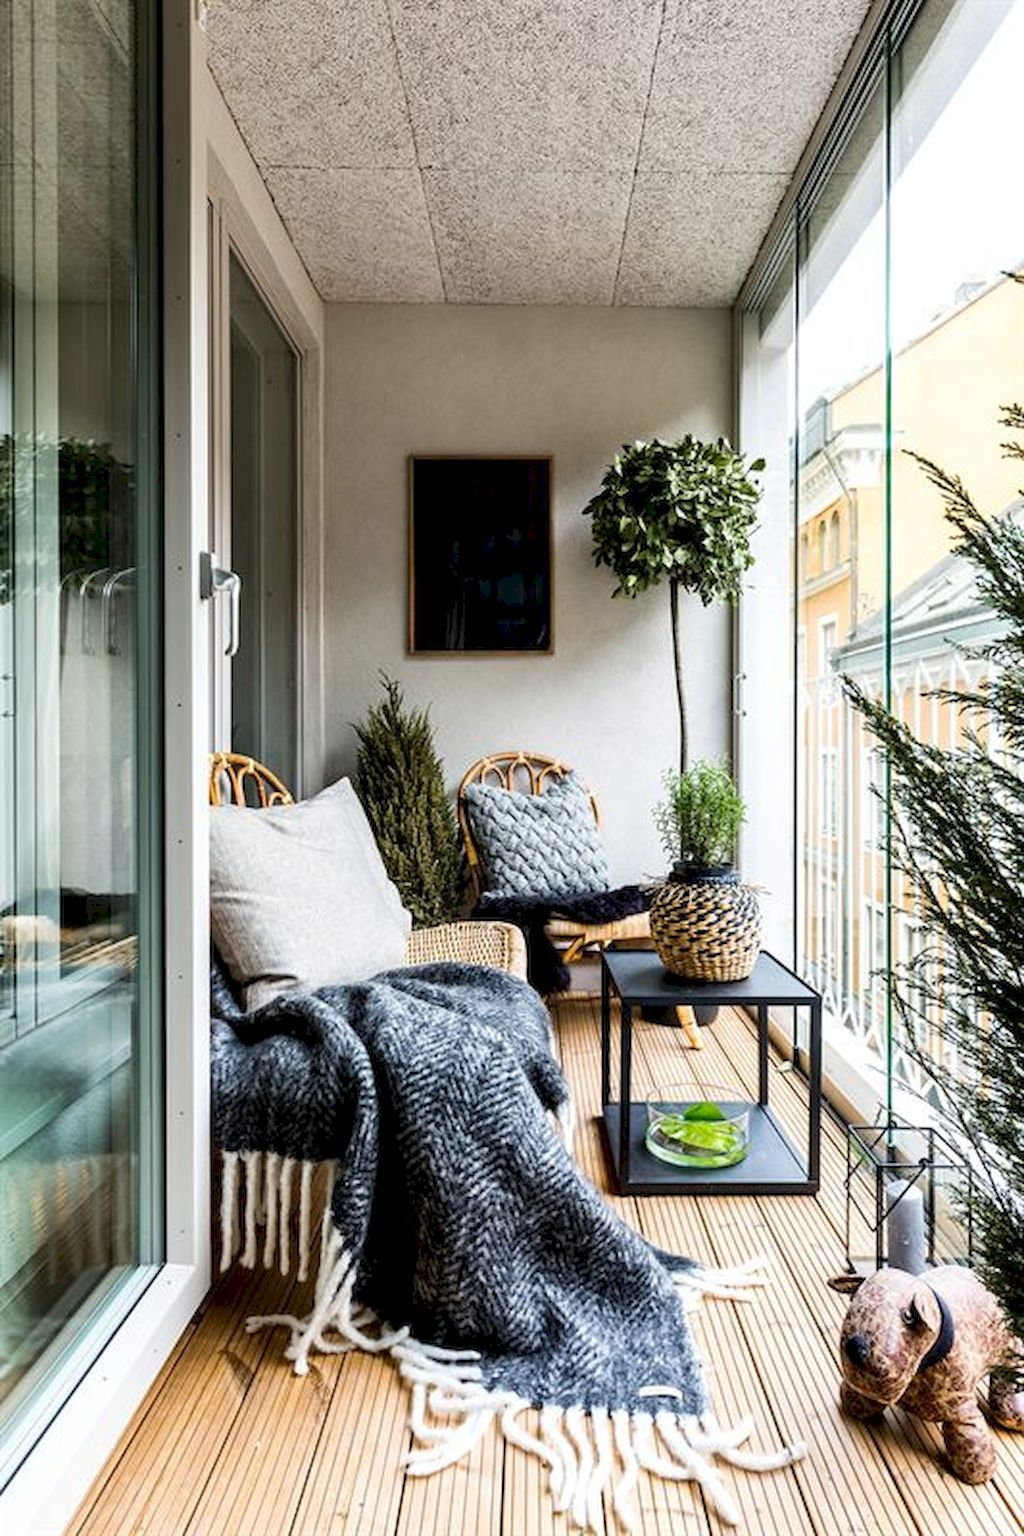 Cool 50 Porches And Patios Farmhouse Decorating Ideas Https Roomadness Com Small Apartment Balcony Ideas Apartment Balcony Decorating Small Porch Decorating